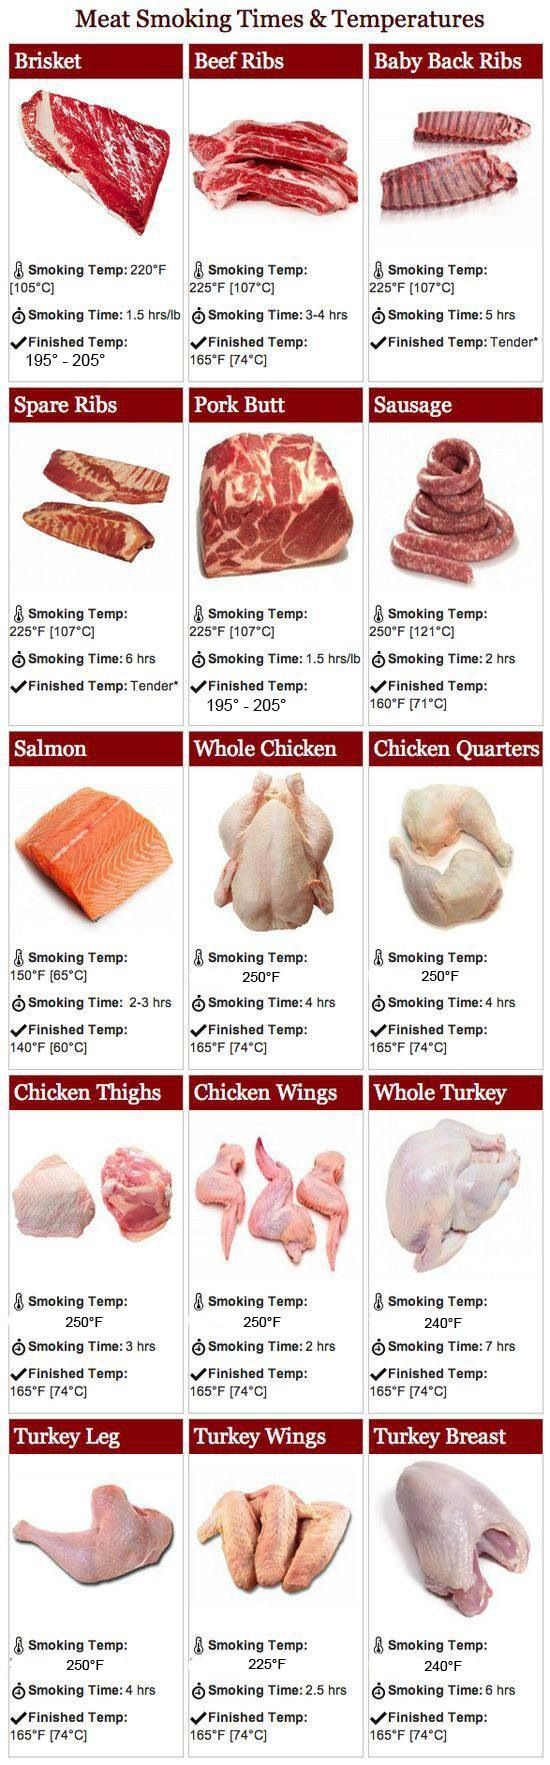 Meat Chart - Smoking Time & Temps